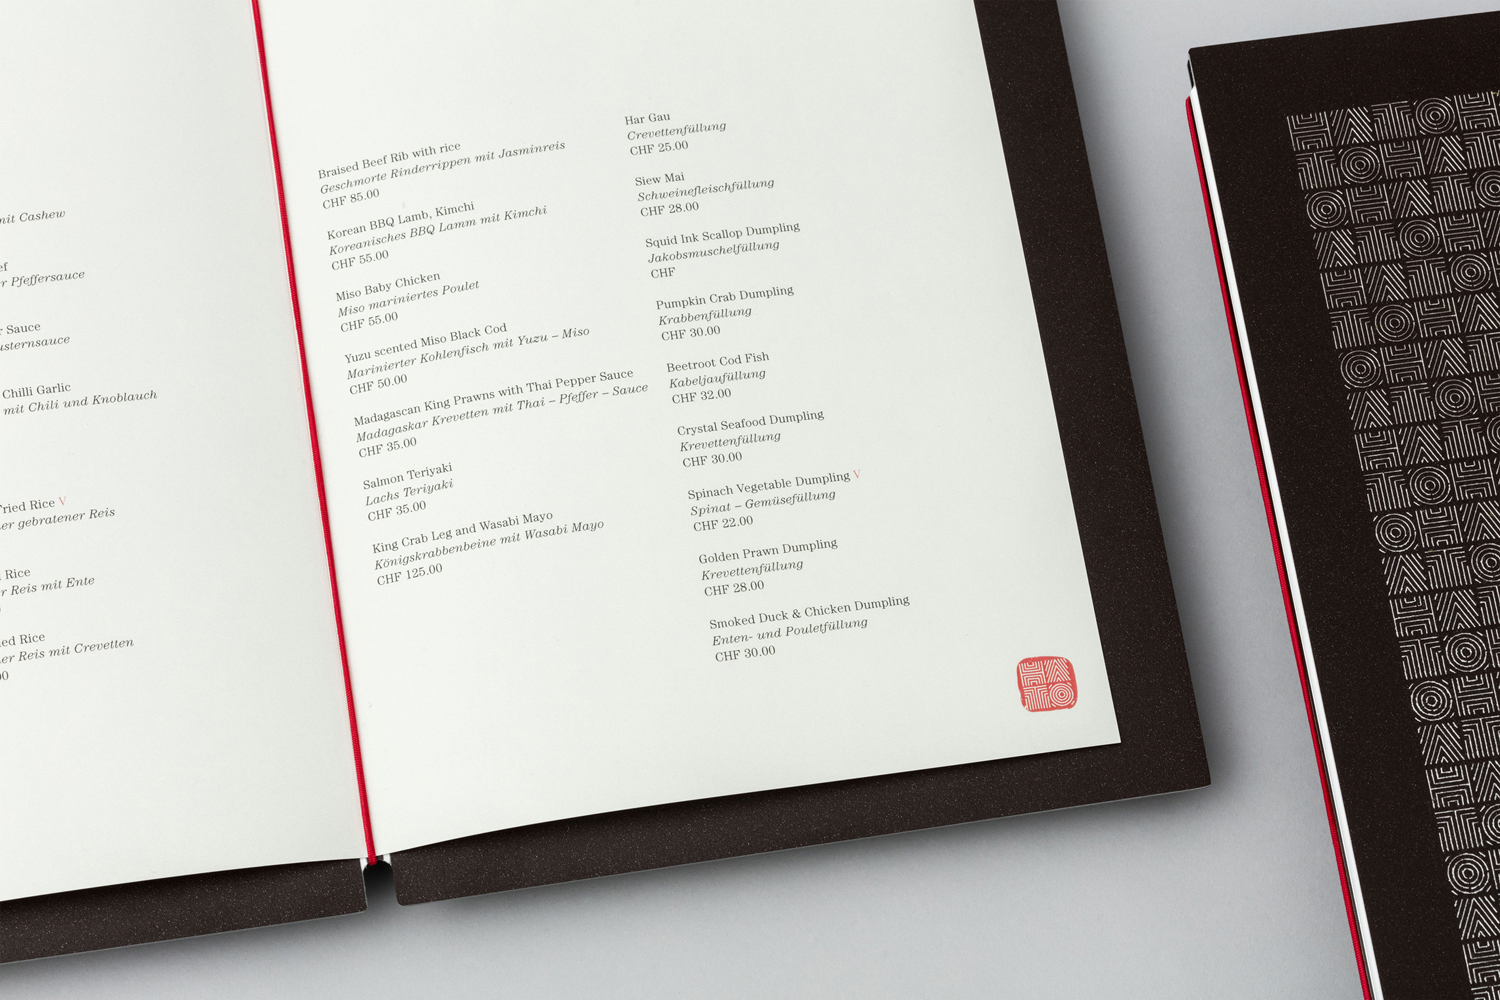 Brand identity and menu design for fine dining Asian restaurant Hato designed by Allink, Switzerland